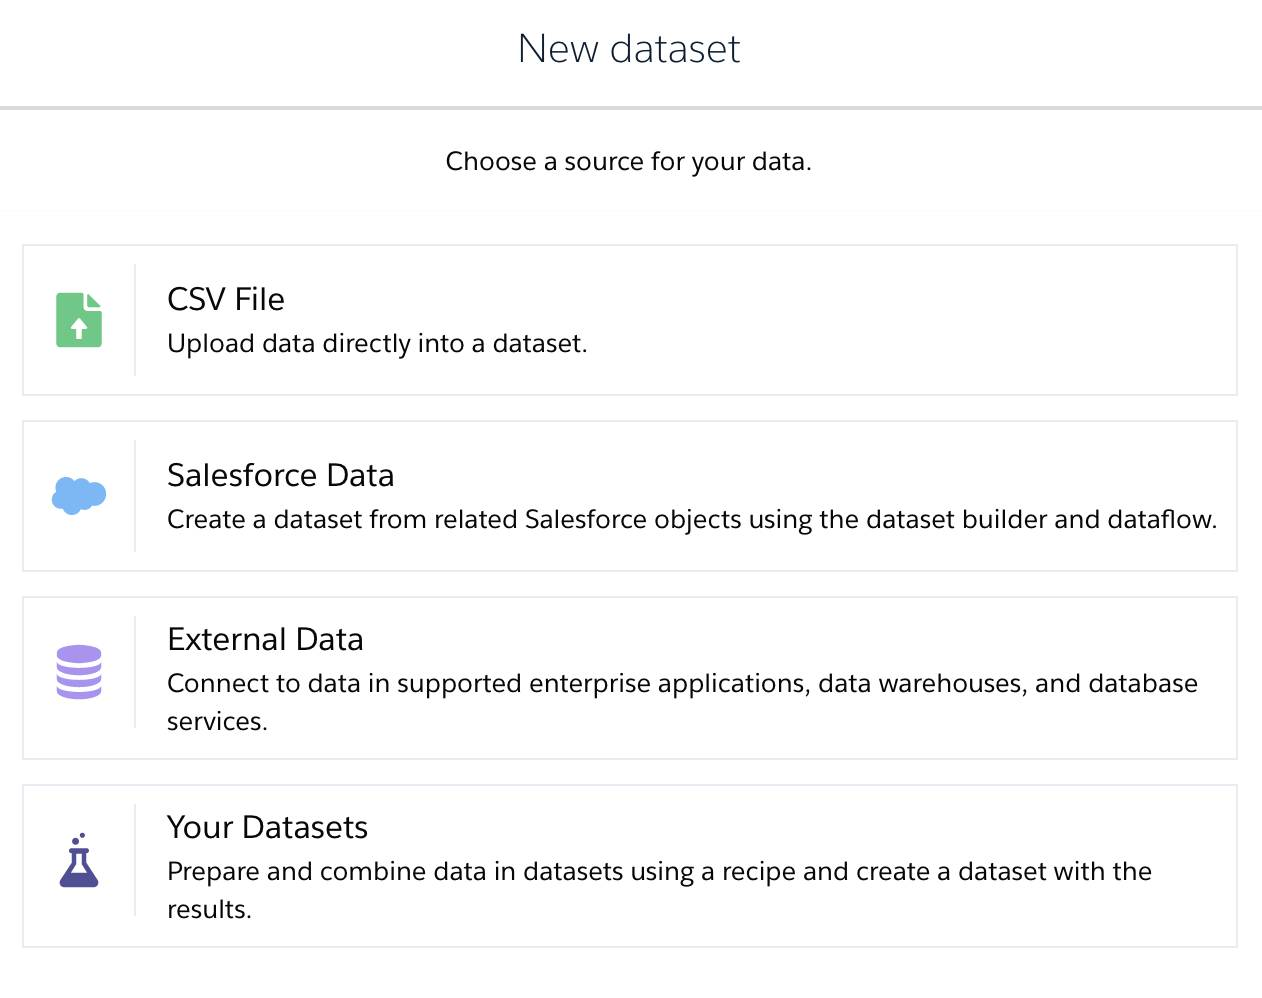 Select a data source for creating a dataset